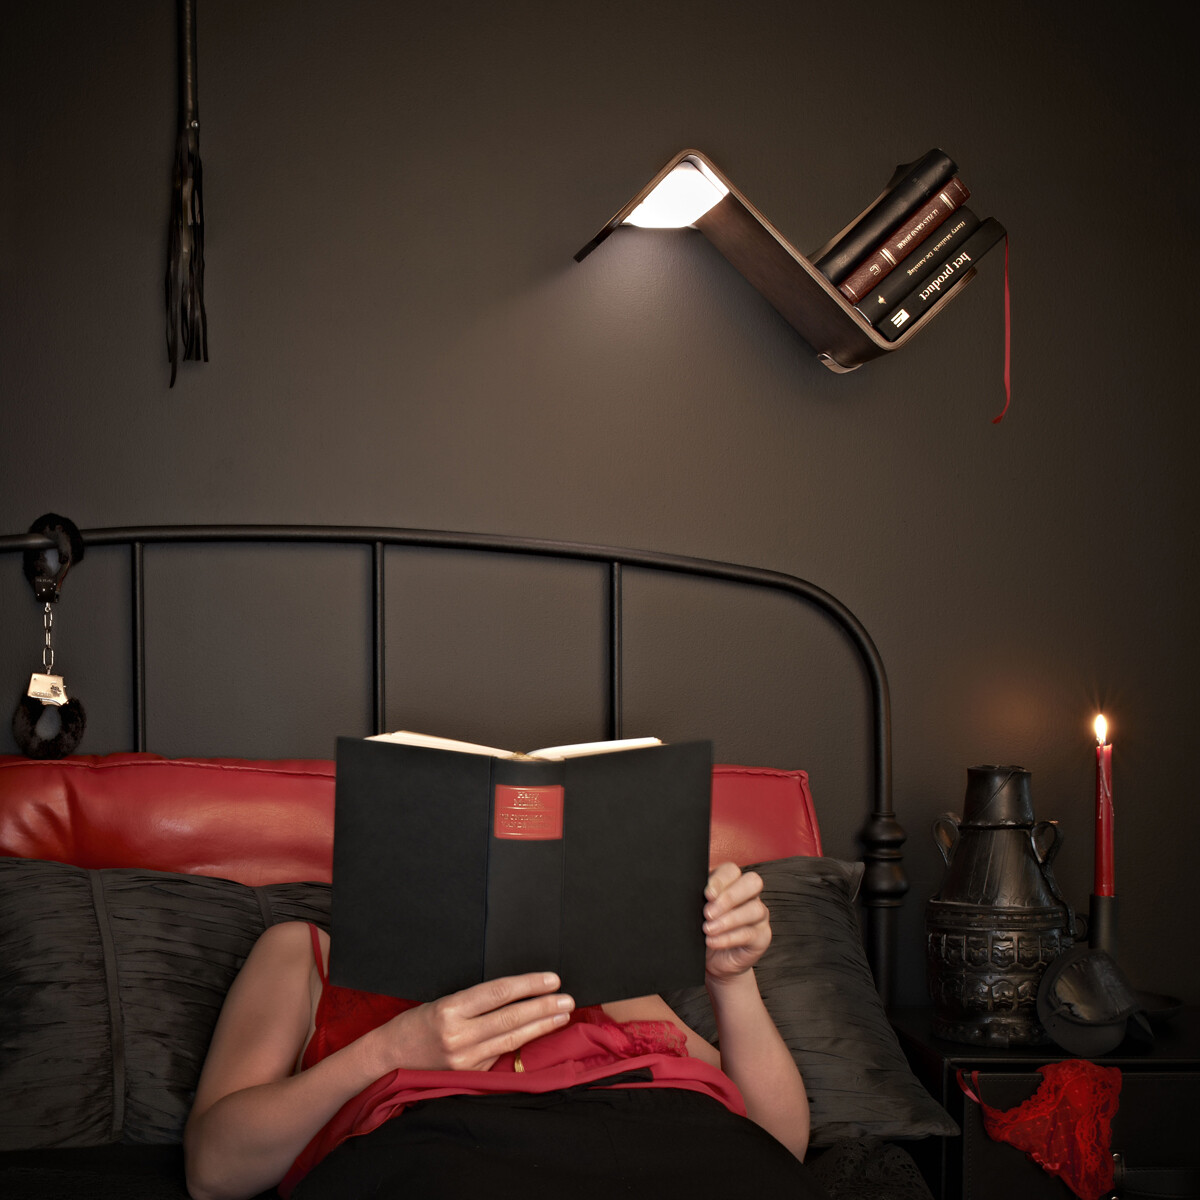 LiliLite takes care of you in the evening when you read in bed!